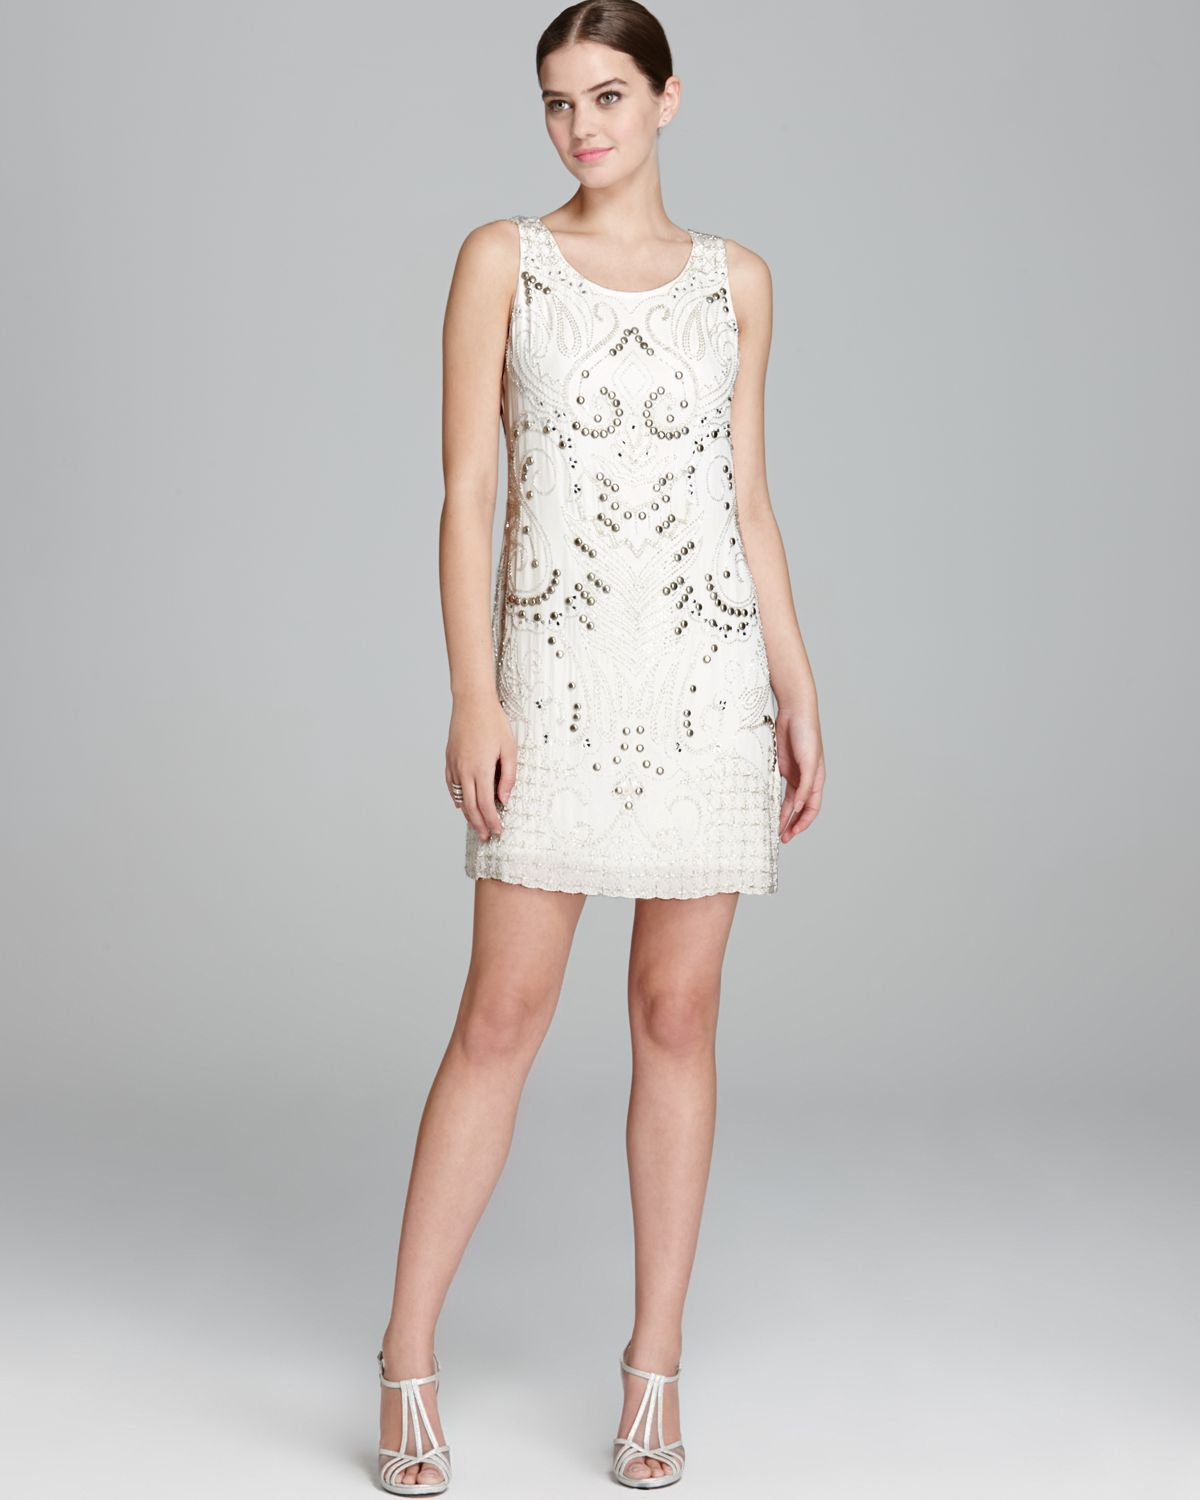 Alice And Olivia White Dress